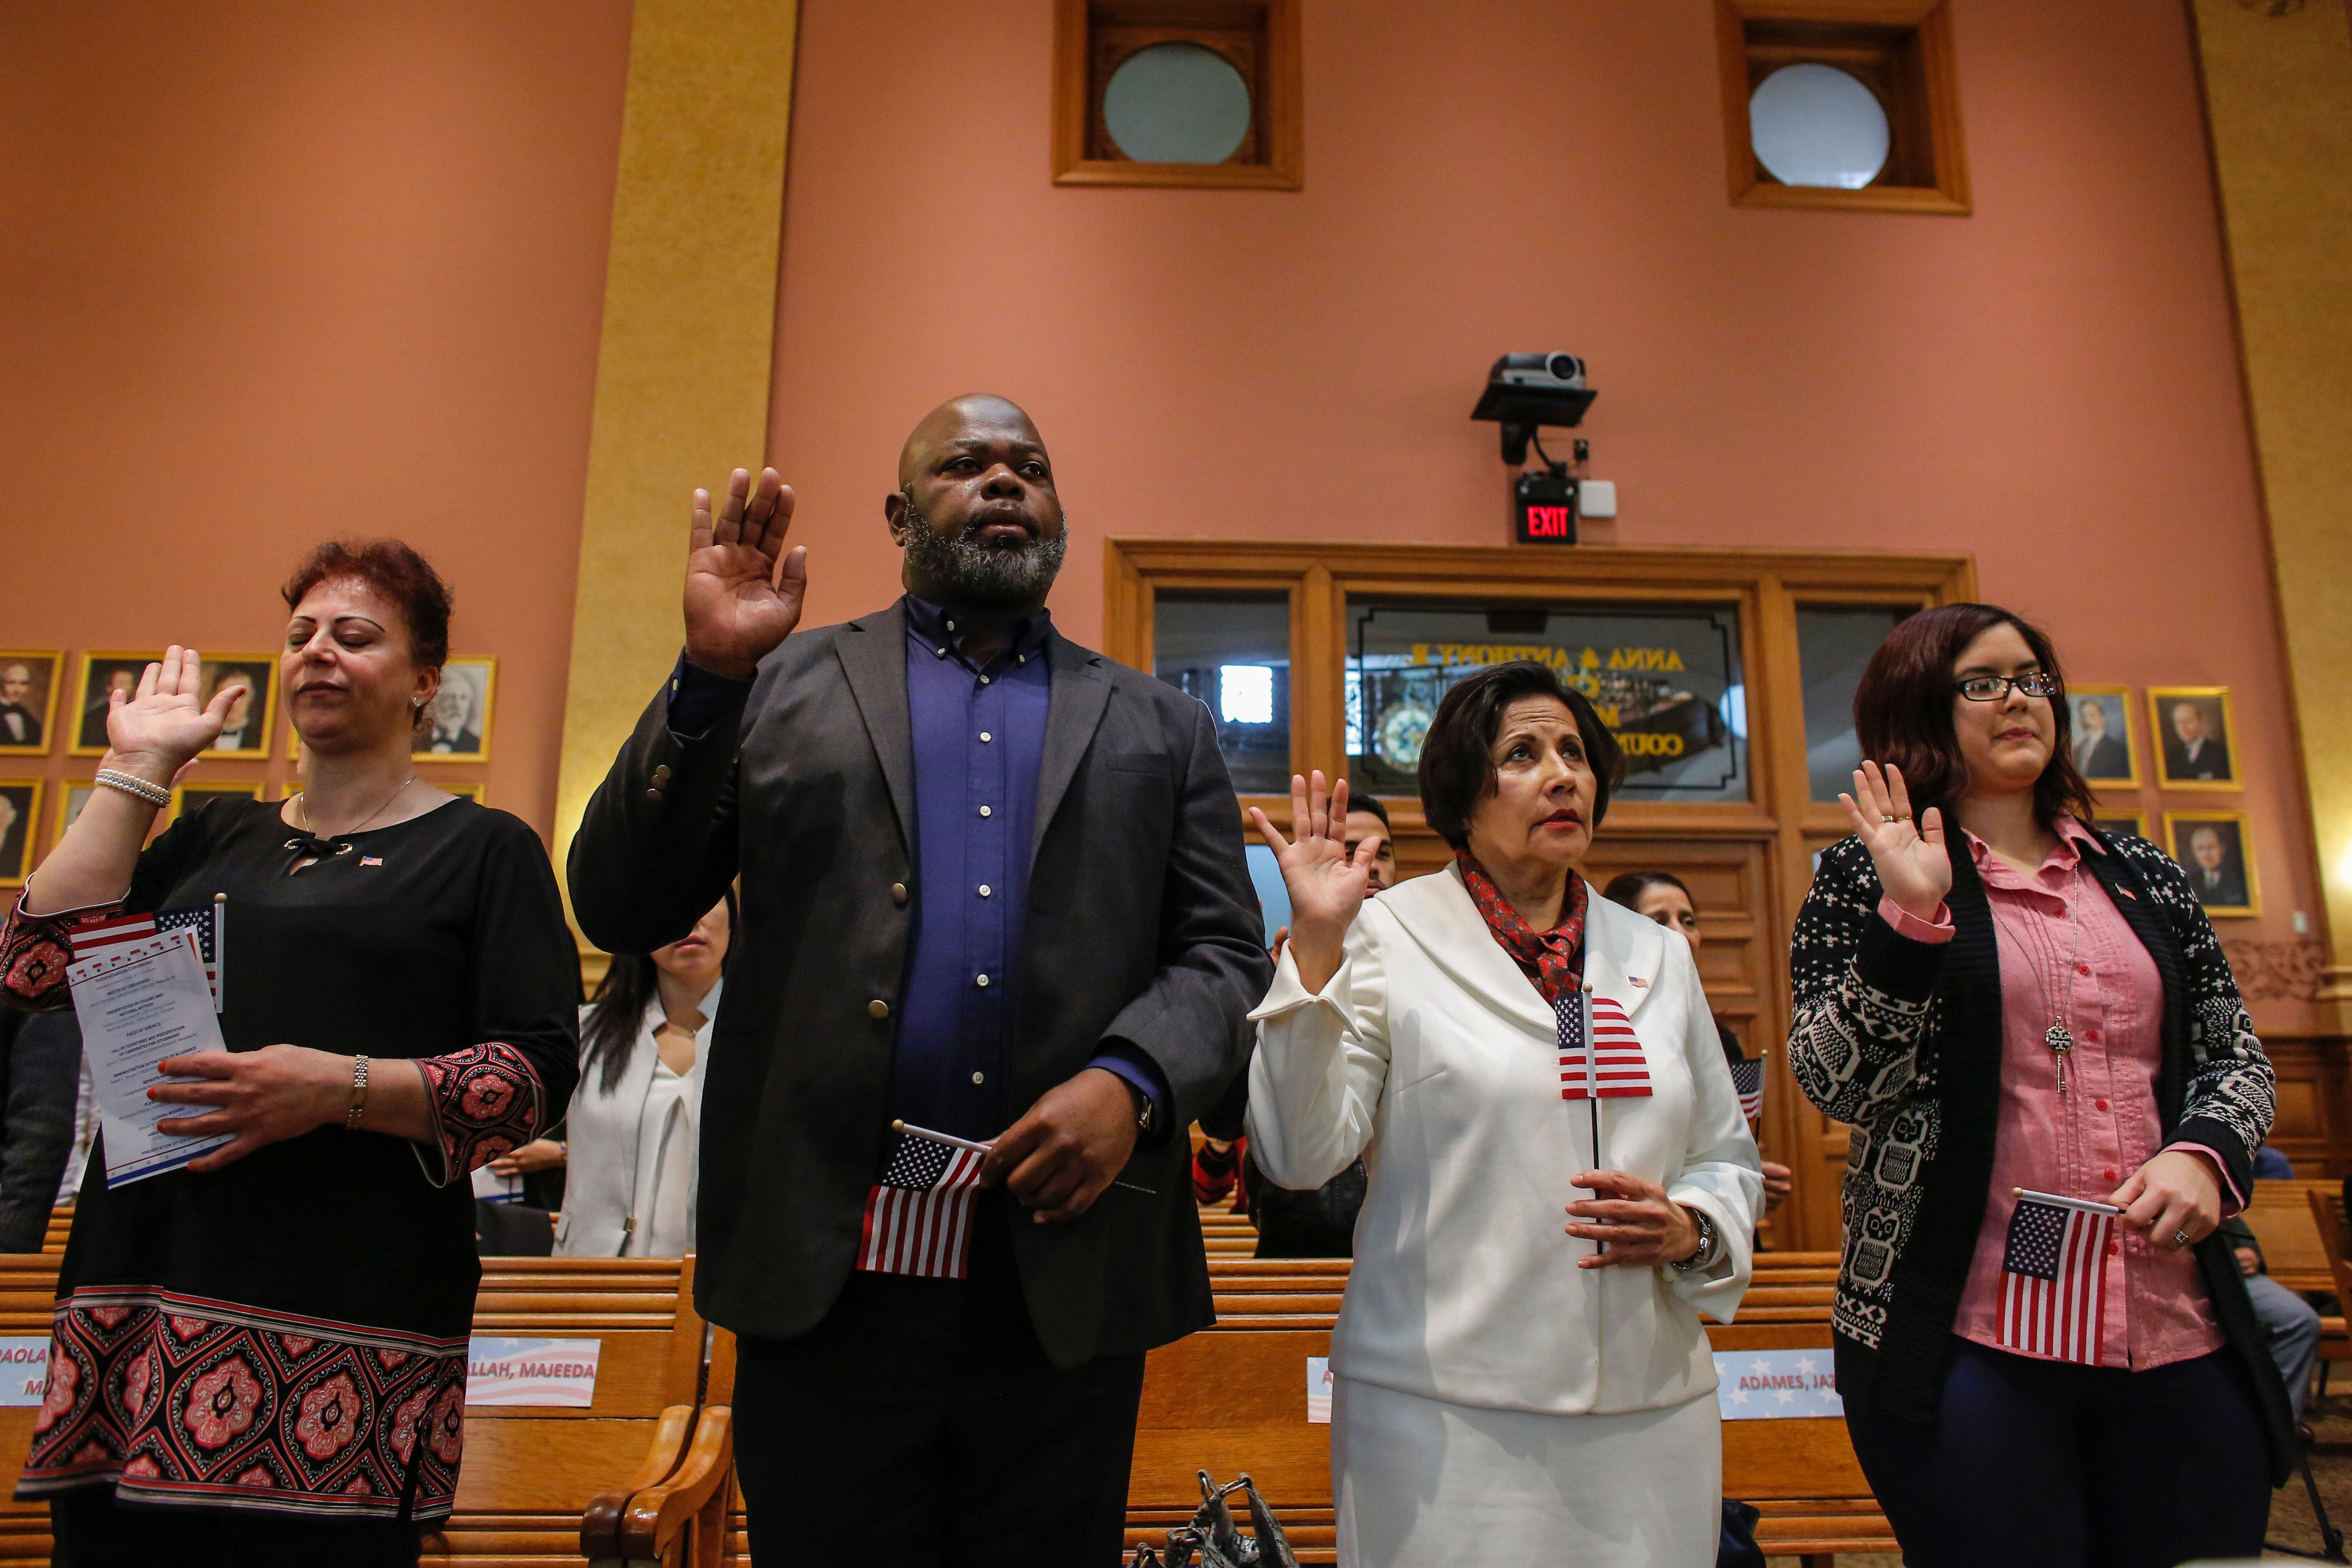 Candidates for US citizenship take the oath of allegiance during a Naturalization Ceremony for new US citizens at the City Hall of Jersey City in New Jersey  on February 22, 2017. / AFP / KENA BETANCUR        (Photo credit should read KENA BETANCUR/AFP/Getty Images)